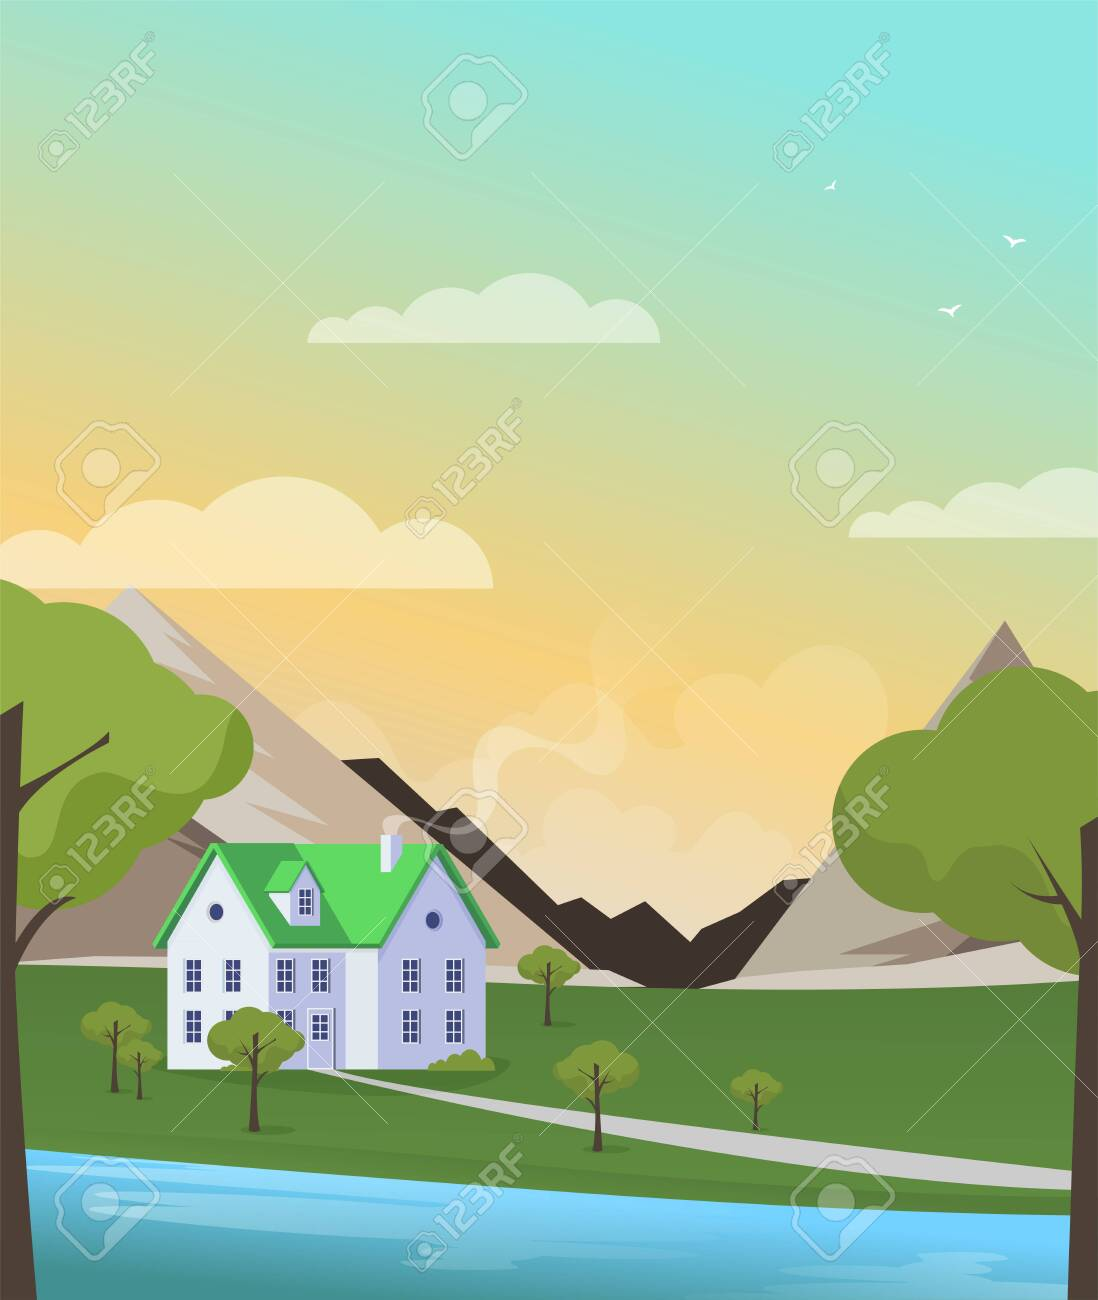 Family home in flat style. Vector illustration. - 135122224